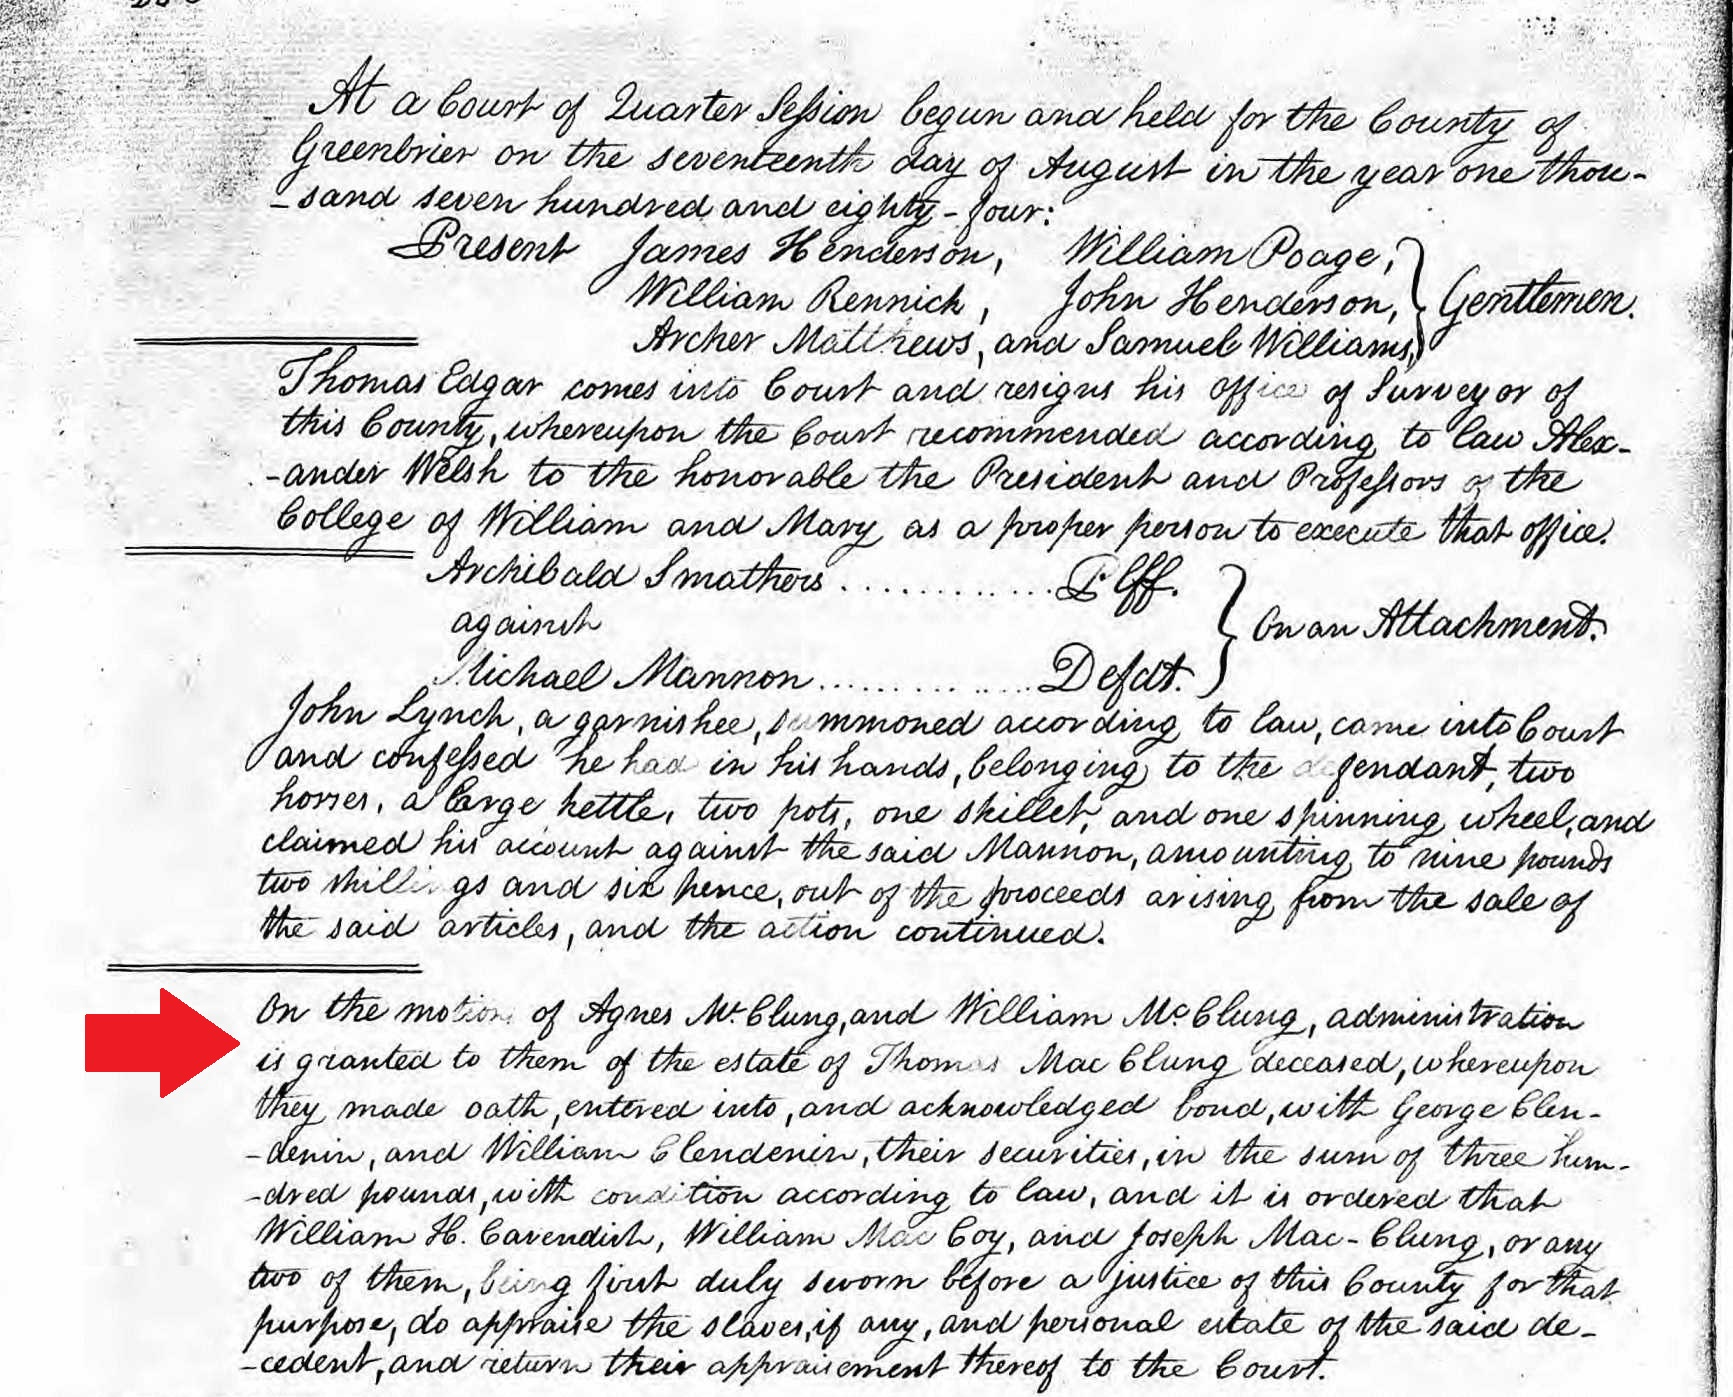 Image:Thomas McClung decd 17 August 1784 Greenbrier Court Minutes.jpg